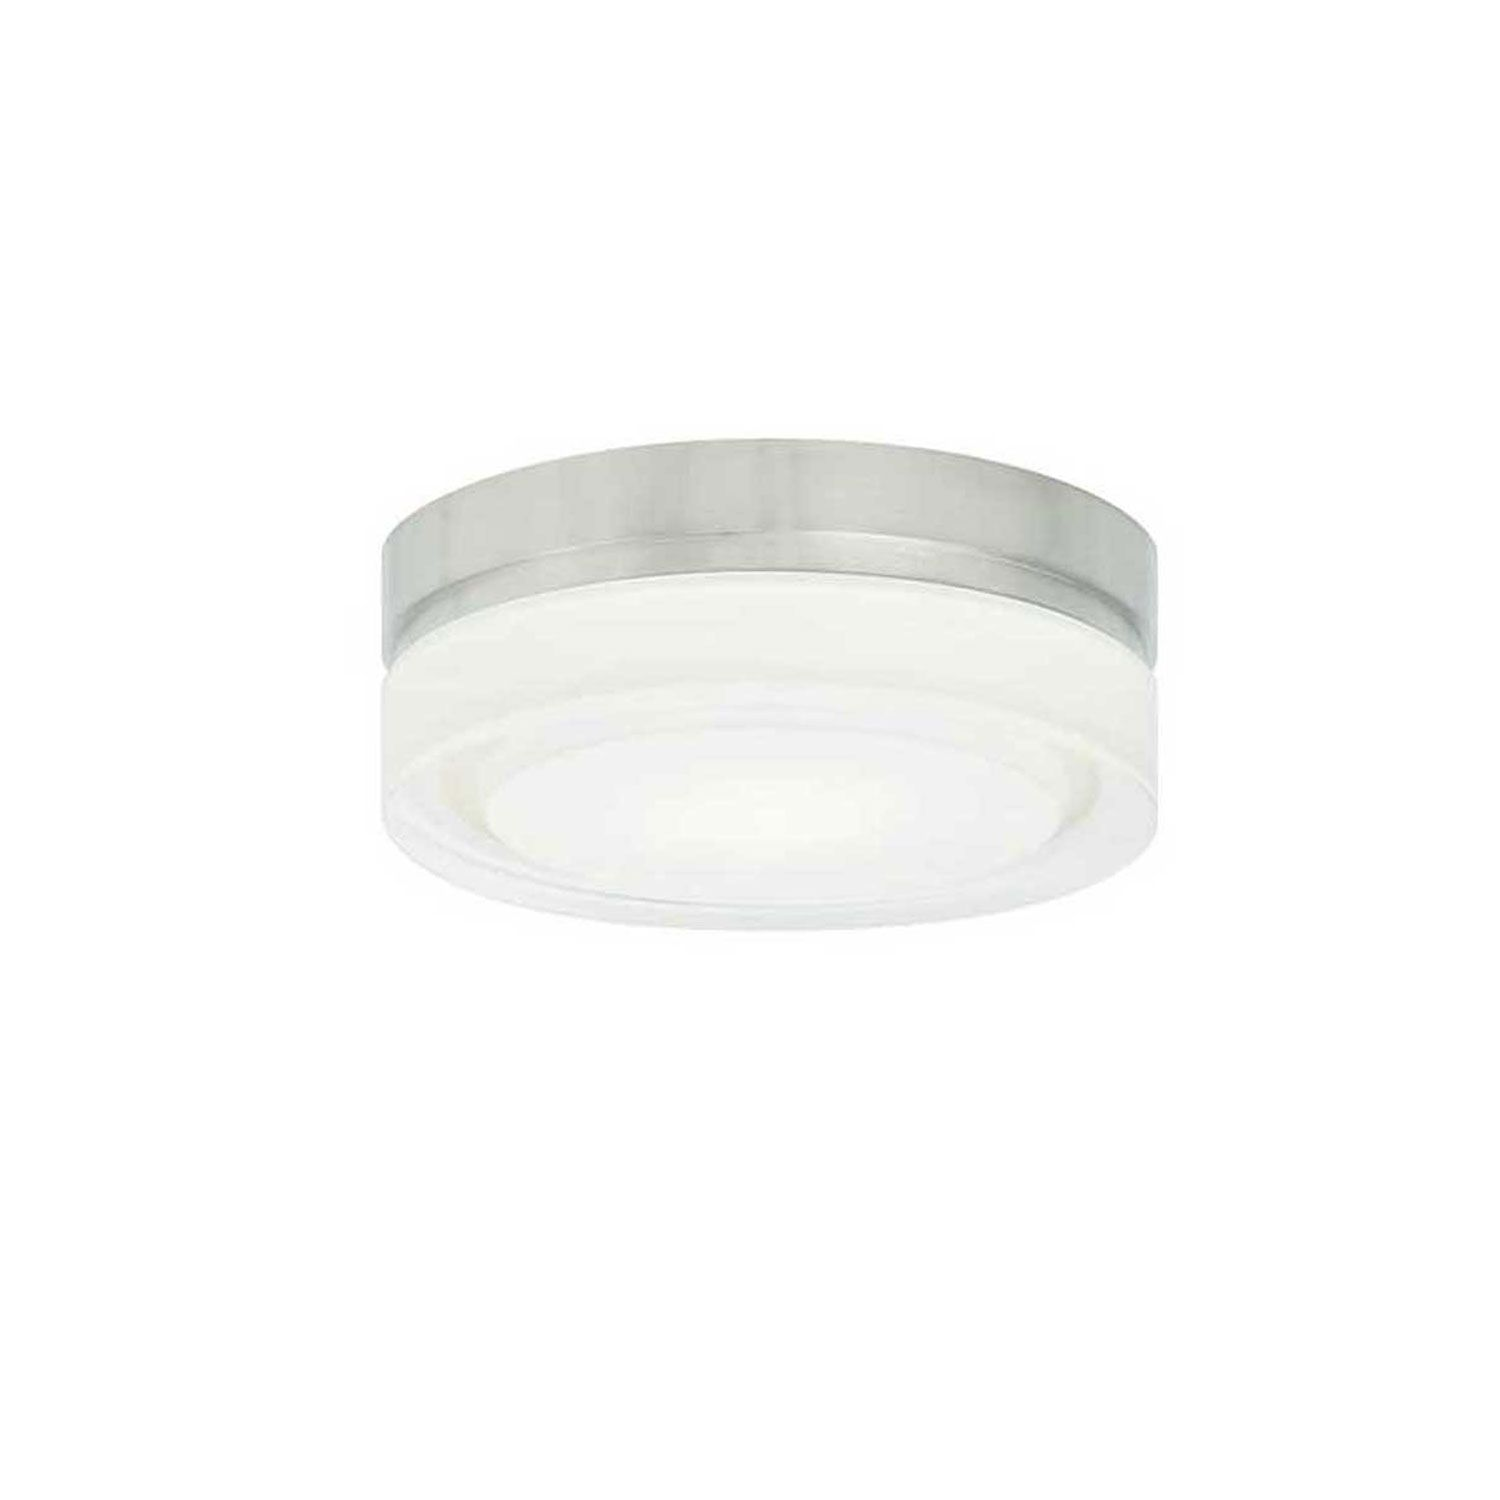 install recessed rugs light baseboard wall lamp pot fixture switch best installing construction full size retrofit ceiling without lighting accent new halo box lights heaters closet replace fixtures wiring easy of